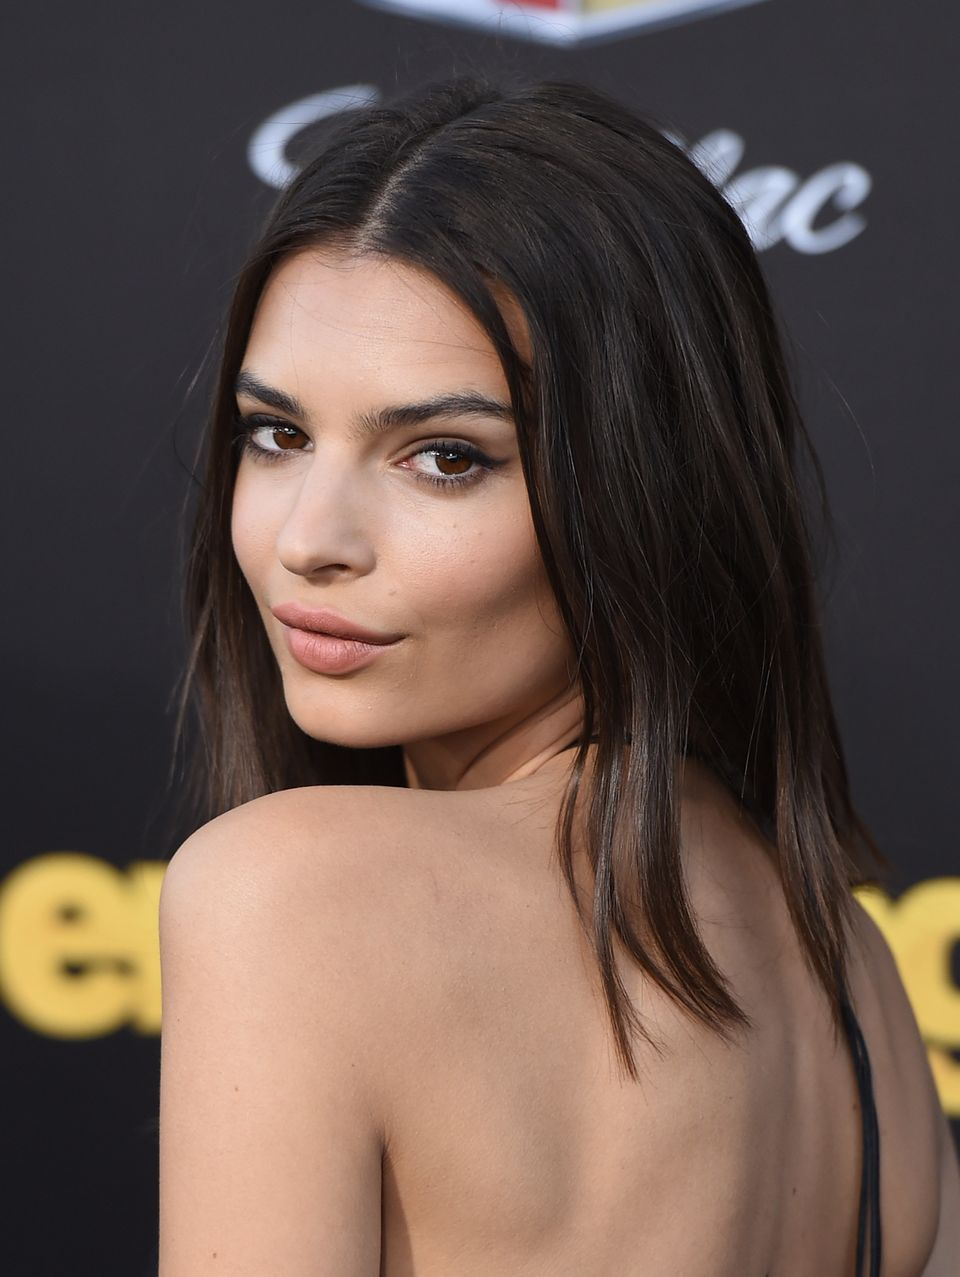 WESTWOOD, CA - JUNE 01:  Actress Emily Ratajkowski  attends the premiere of Warner Bros. Pictures' 'Entourage' at Regency Vil